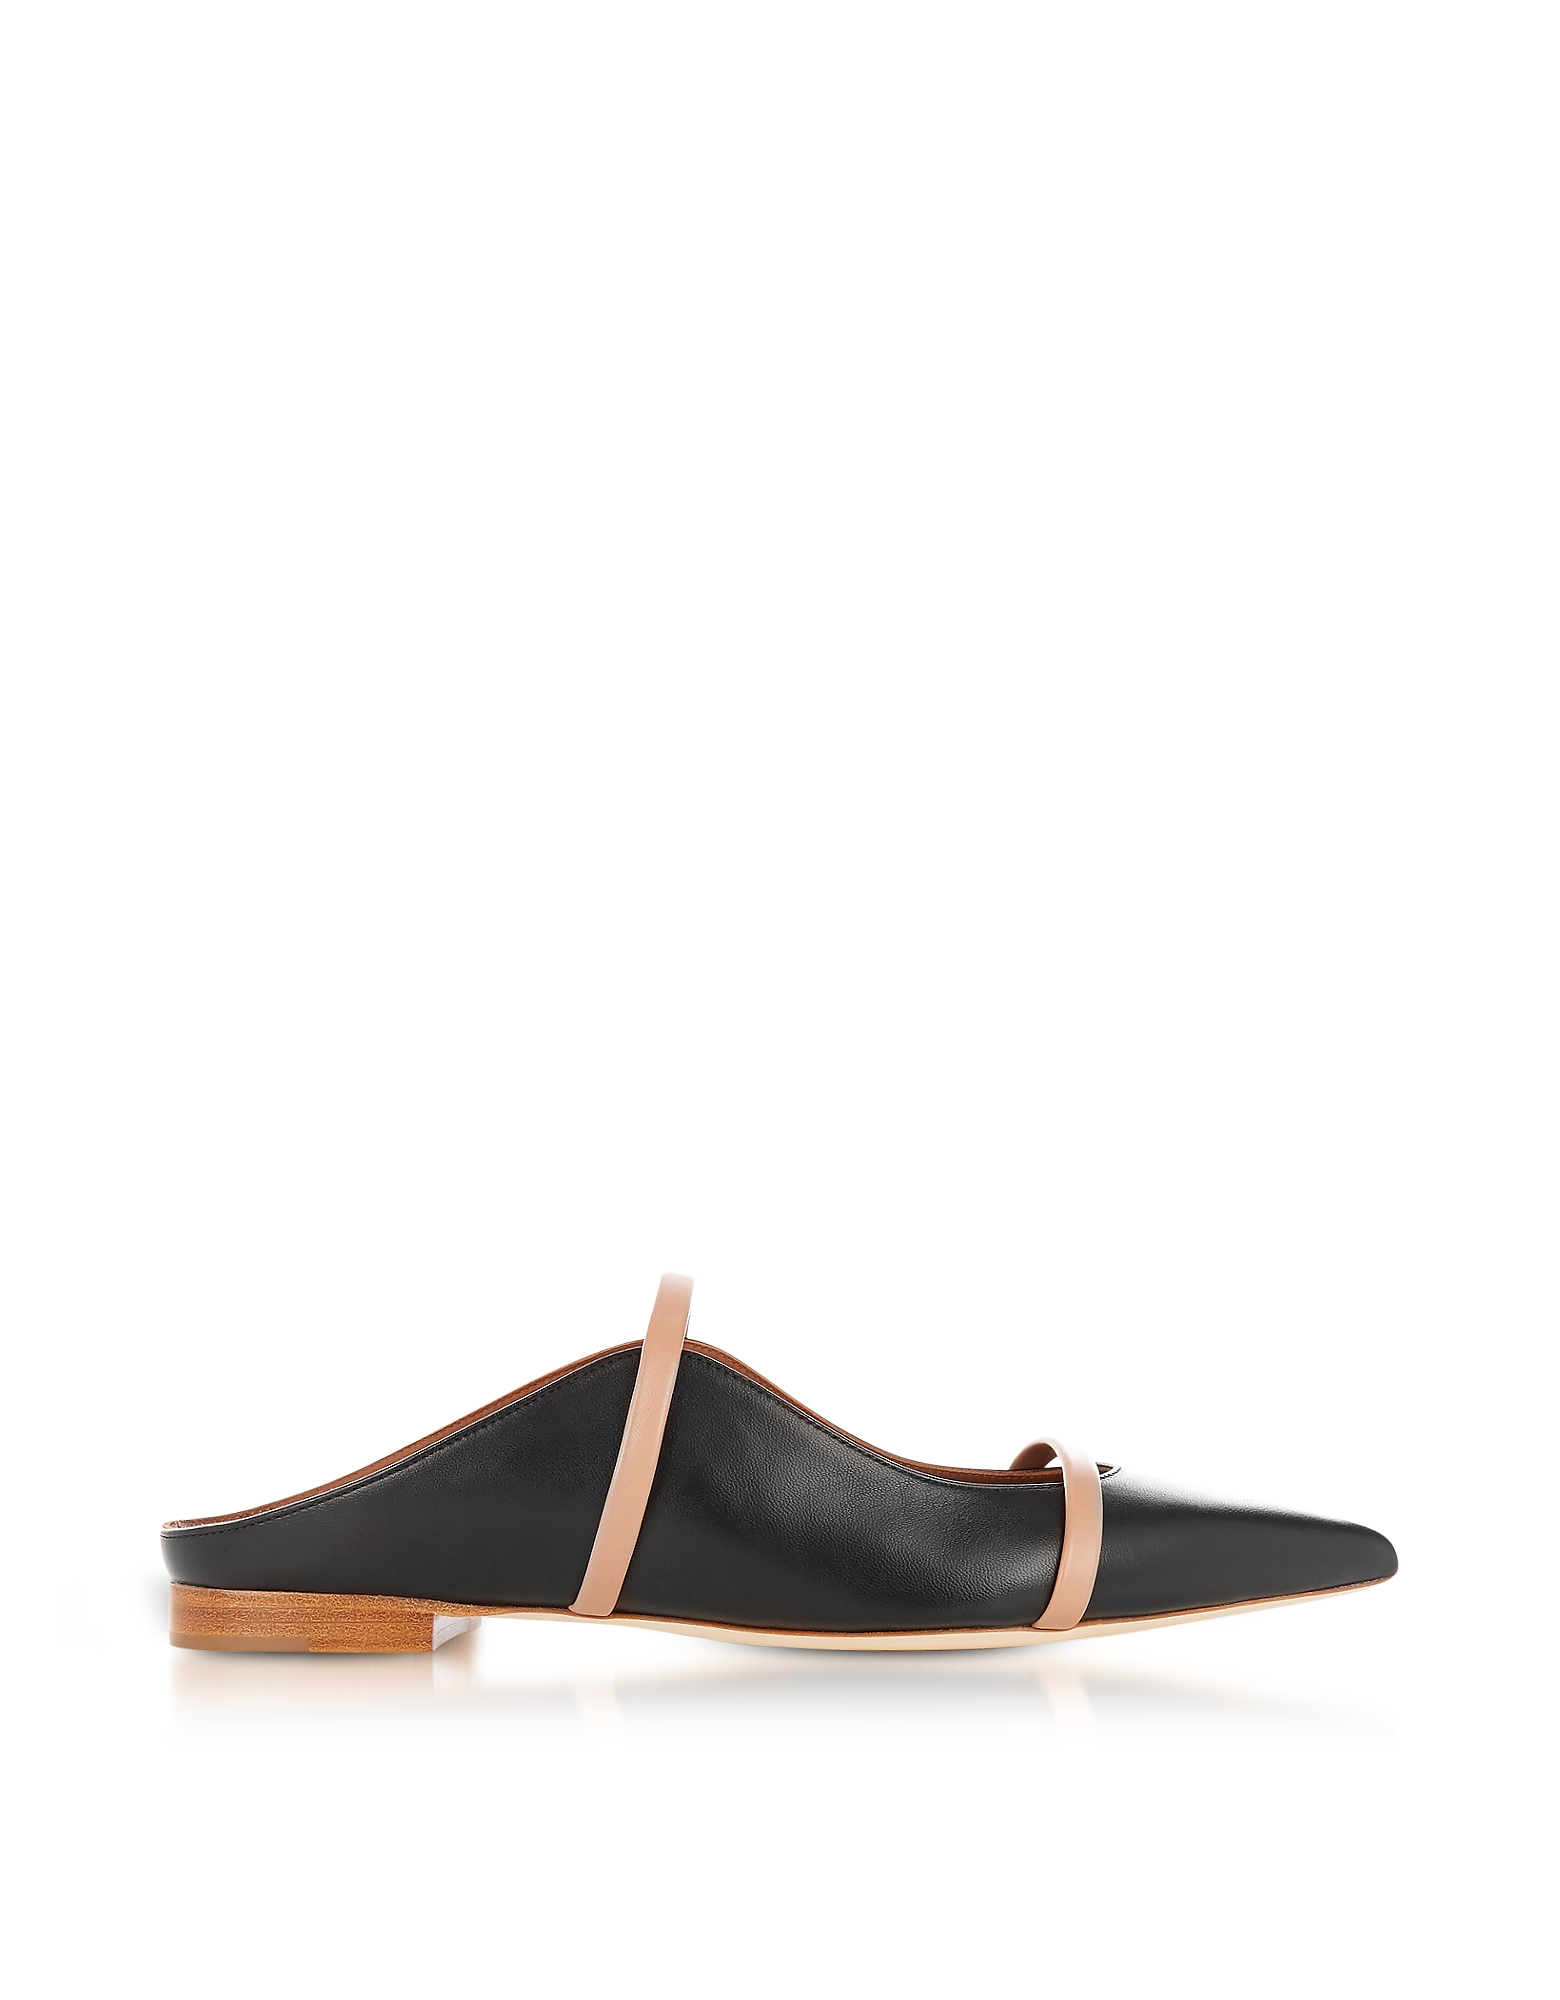 Malone Souliers Shoes, Maureen Black and Nude Nappa Leather Flat Mules